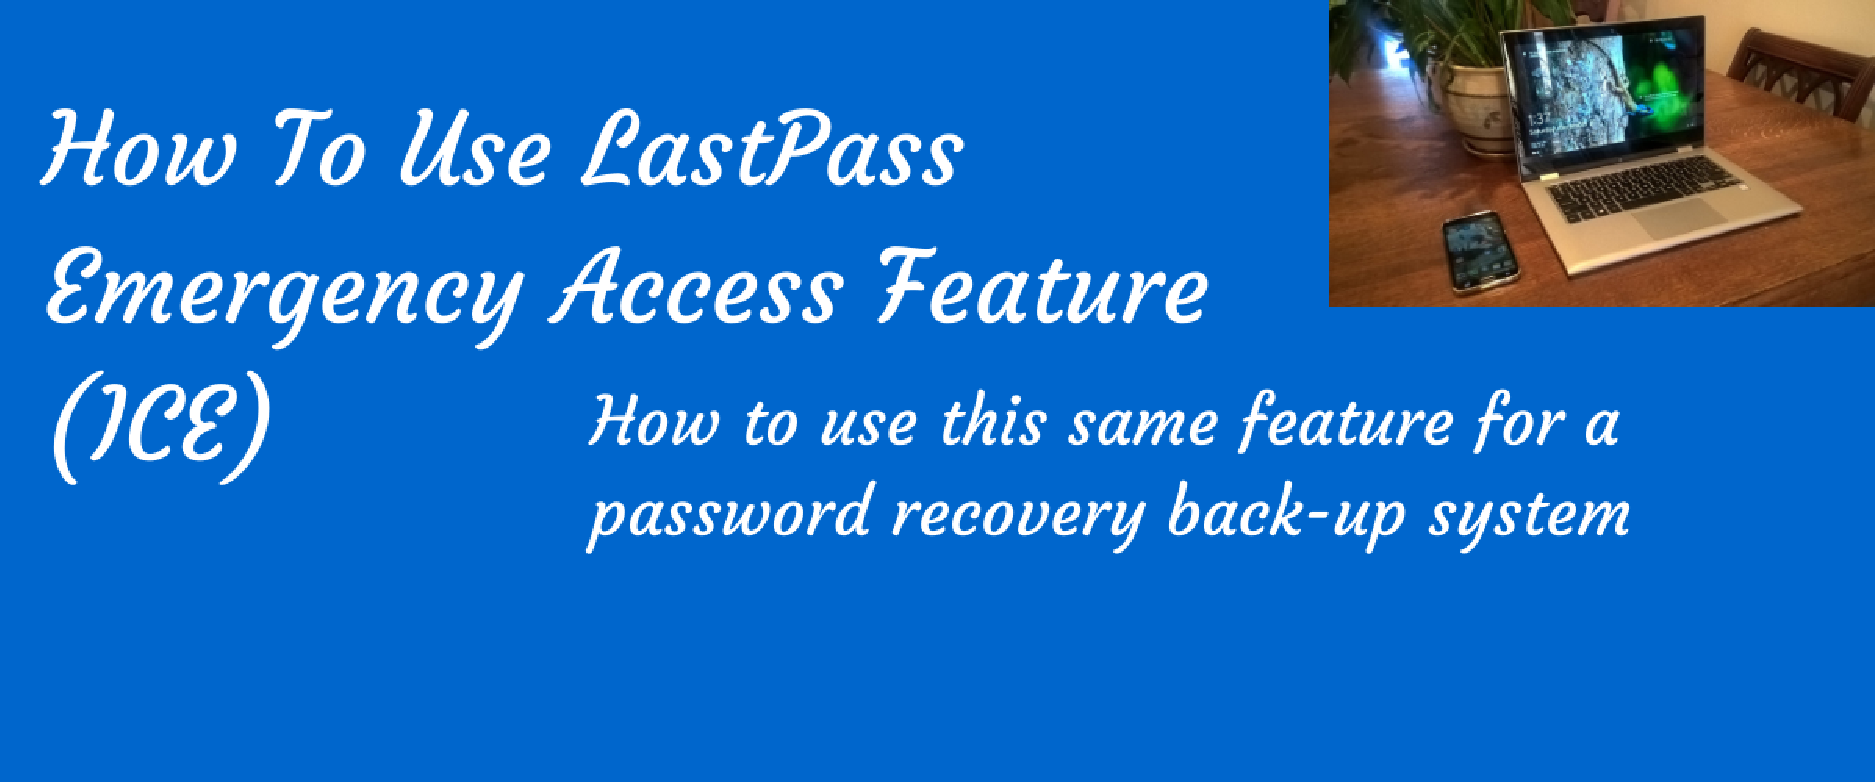 lastpass emergency access service